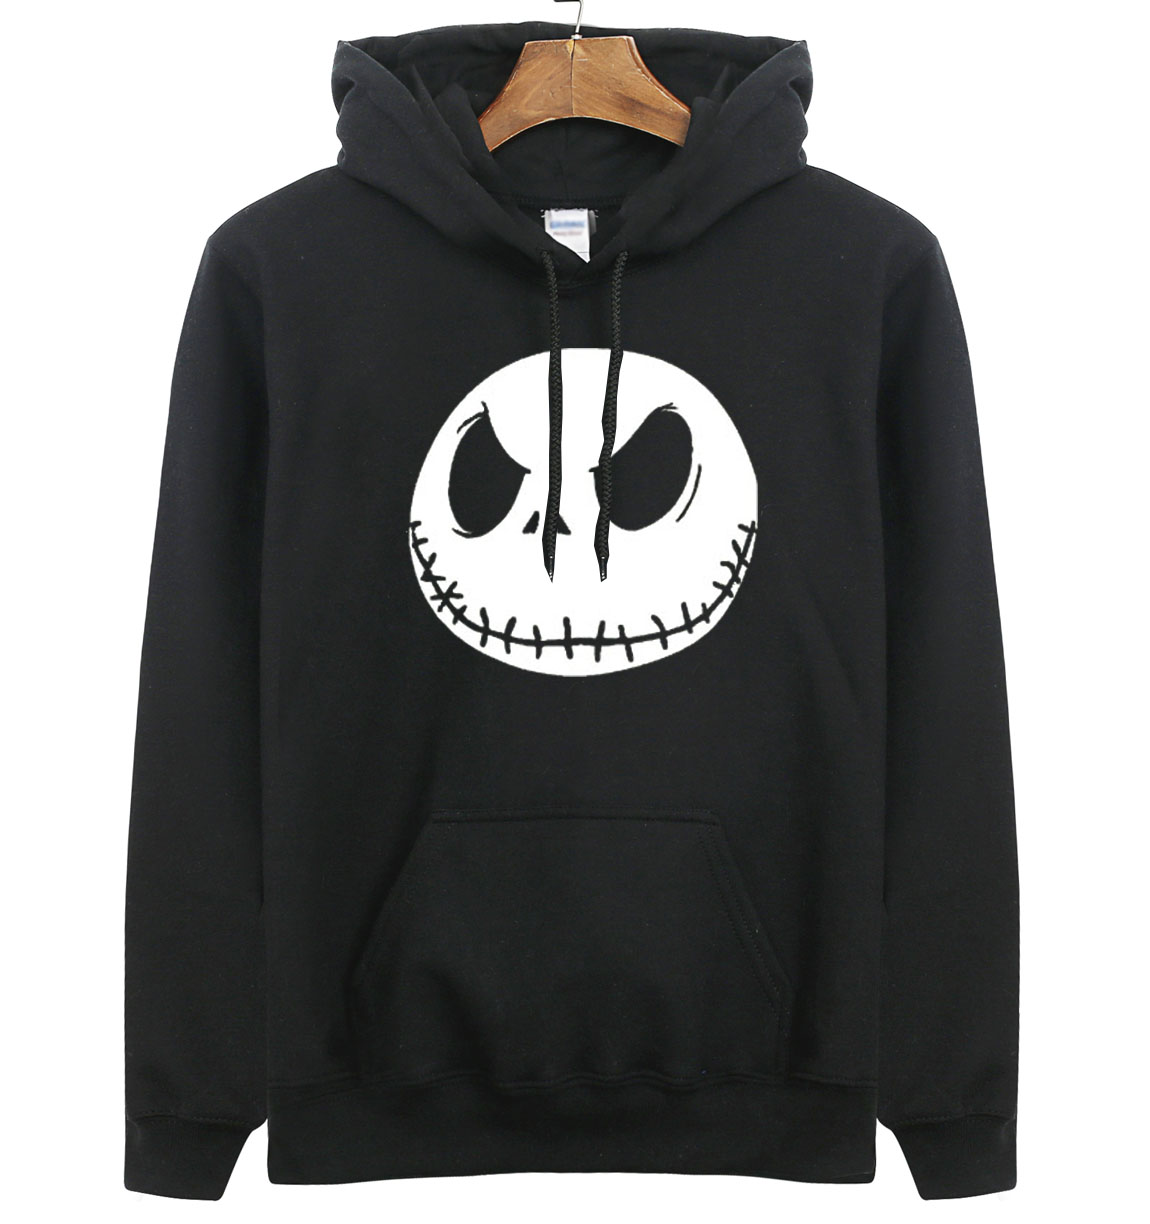 New Arrival Jack Skellington Men Sweatshirts 2018 New Spring Winter Men Hoodie Nightmare Before Christmas Hoodies Men Streetwear